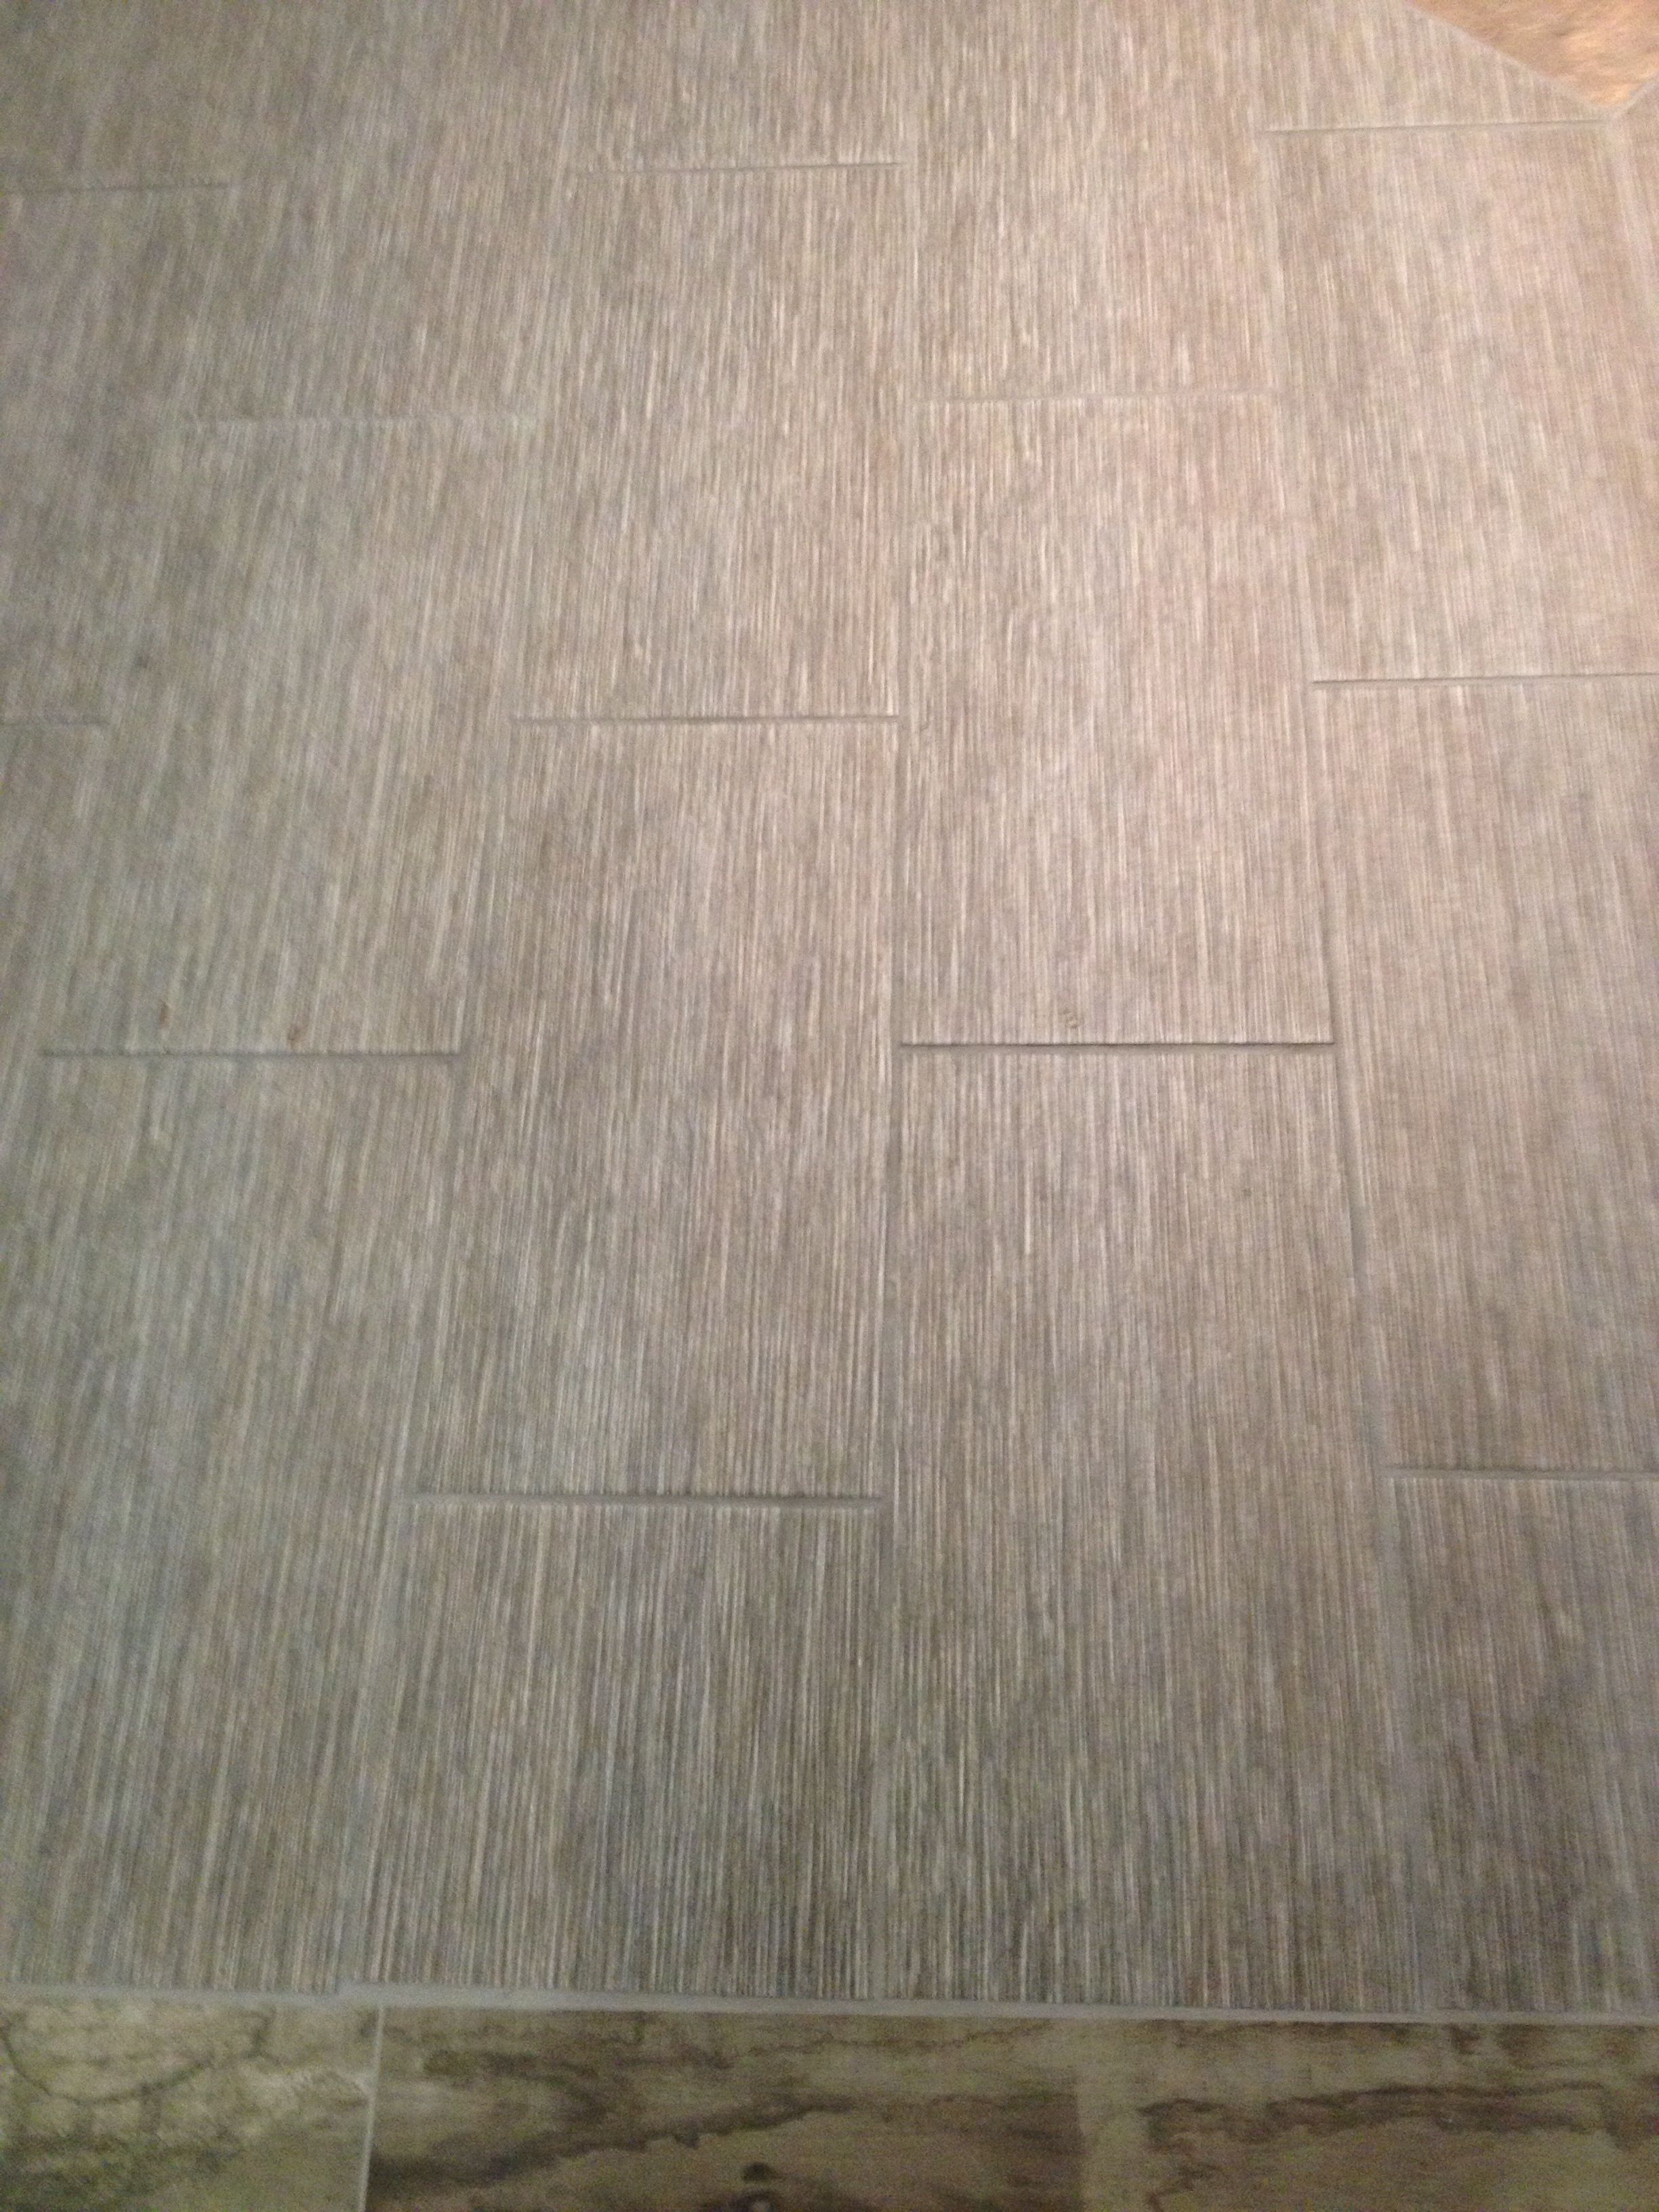 X Floor Tile Layout Wall Tiles Pinterest Wall Tiles And Walls - 12x18 floor tile